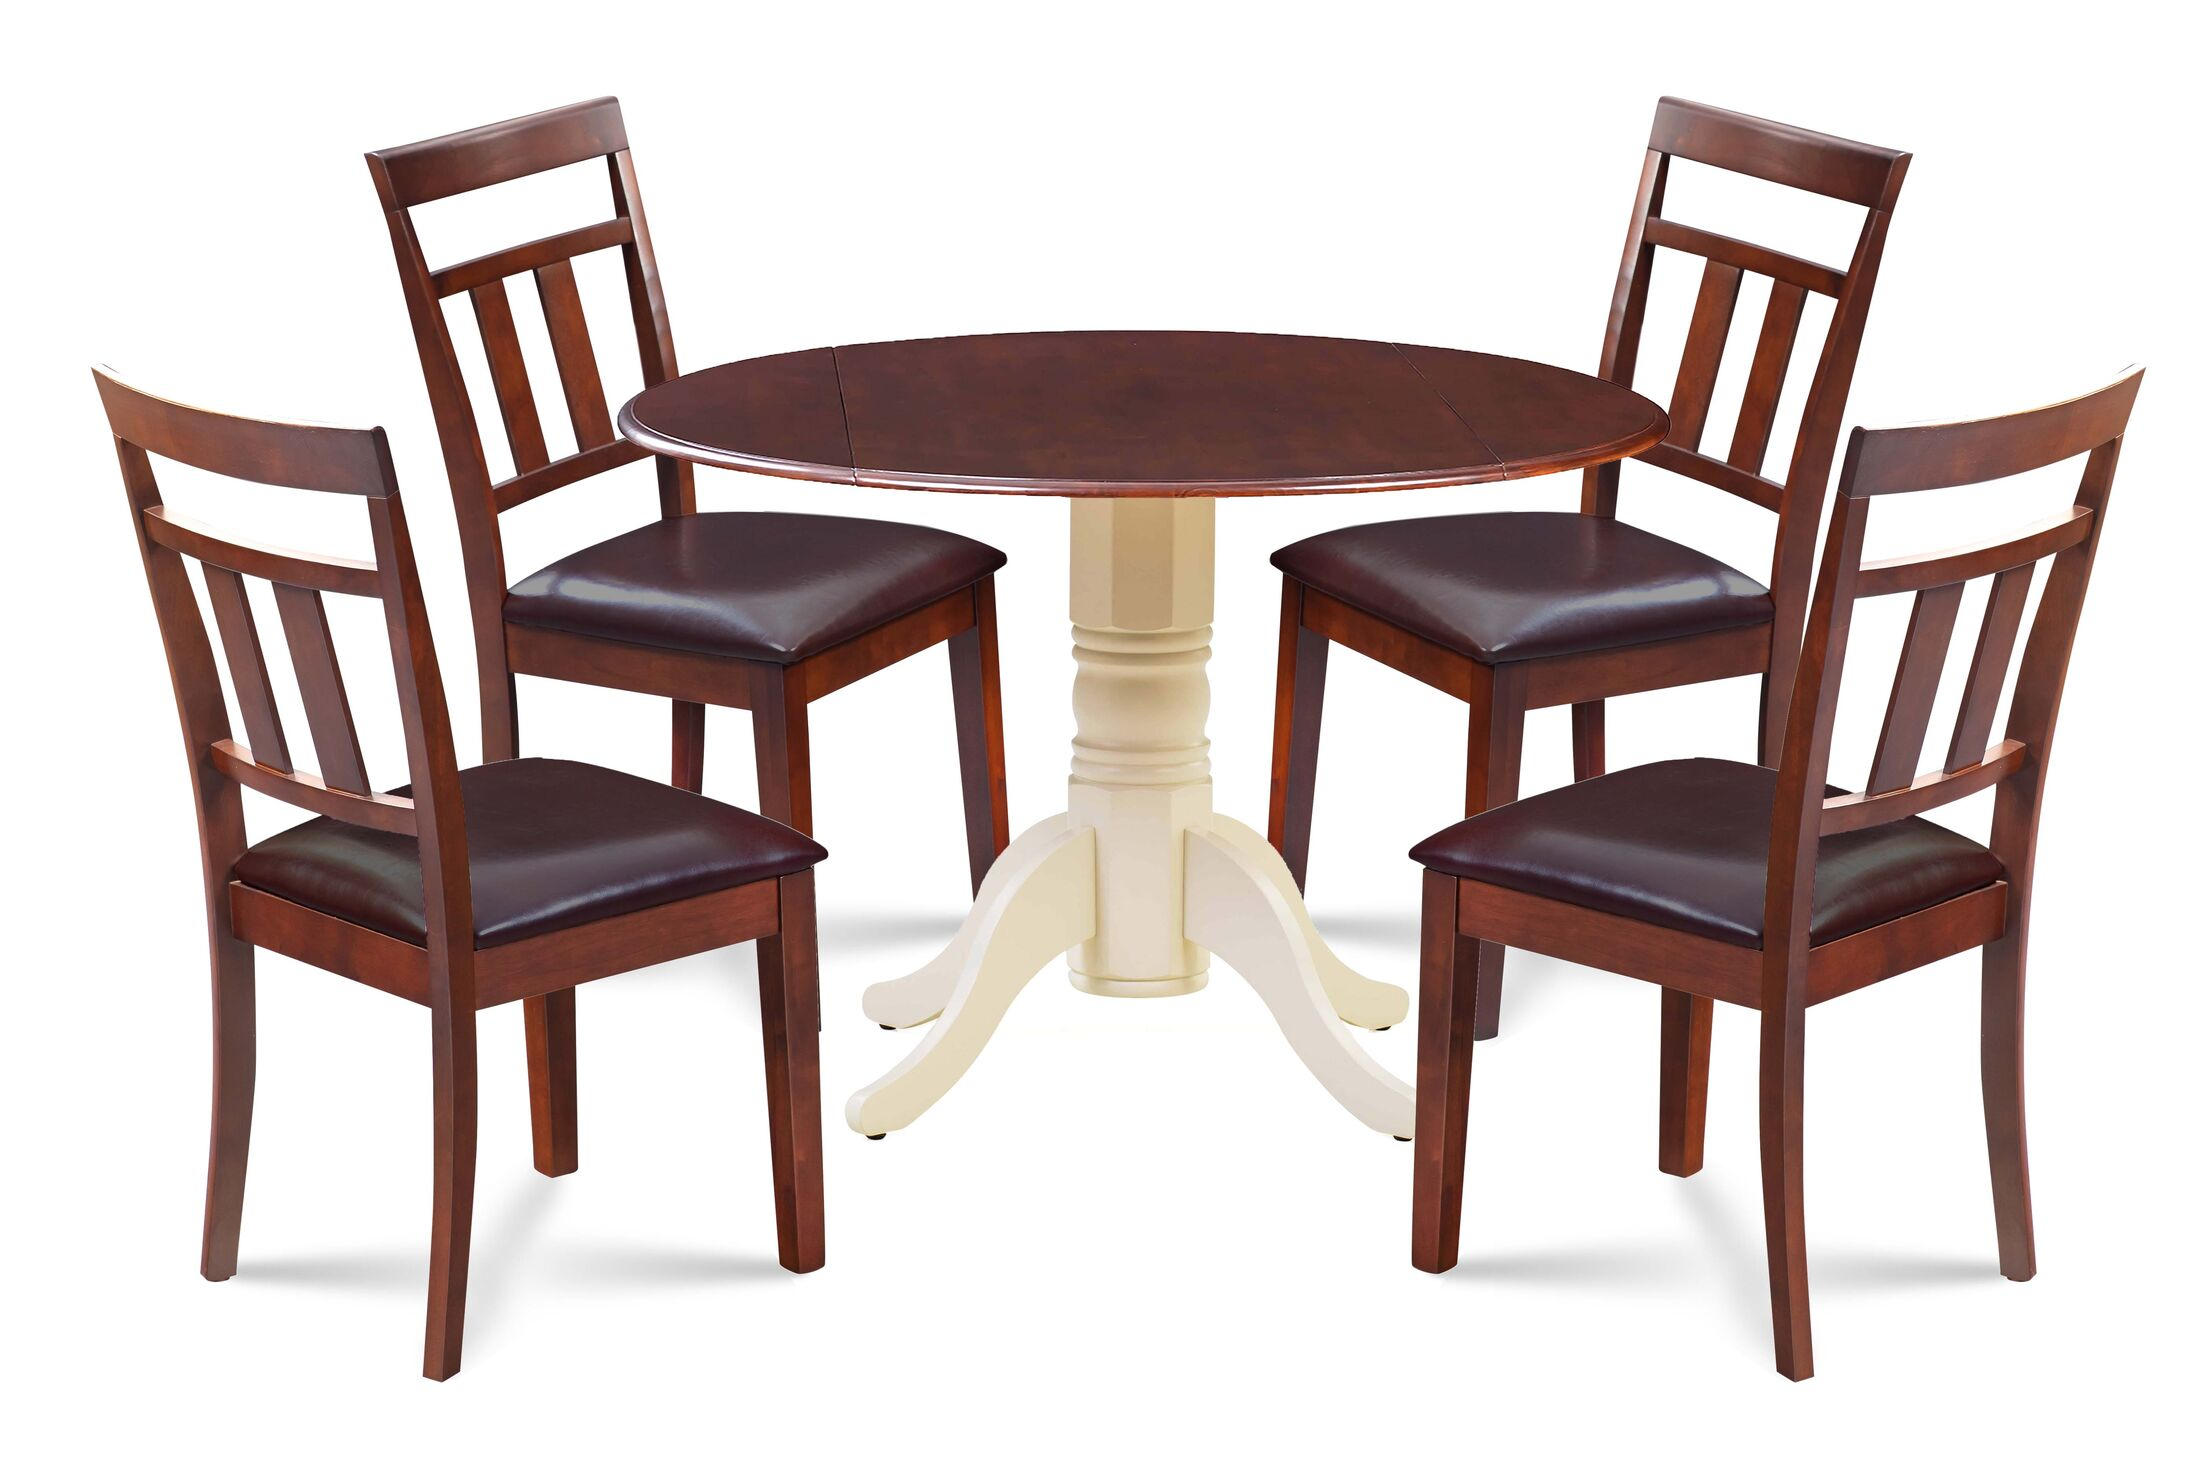 Chesterton 5 Piece Drop Leaf Solid Wood Dining Set Table Top Color: Mahogany